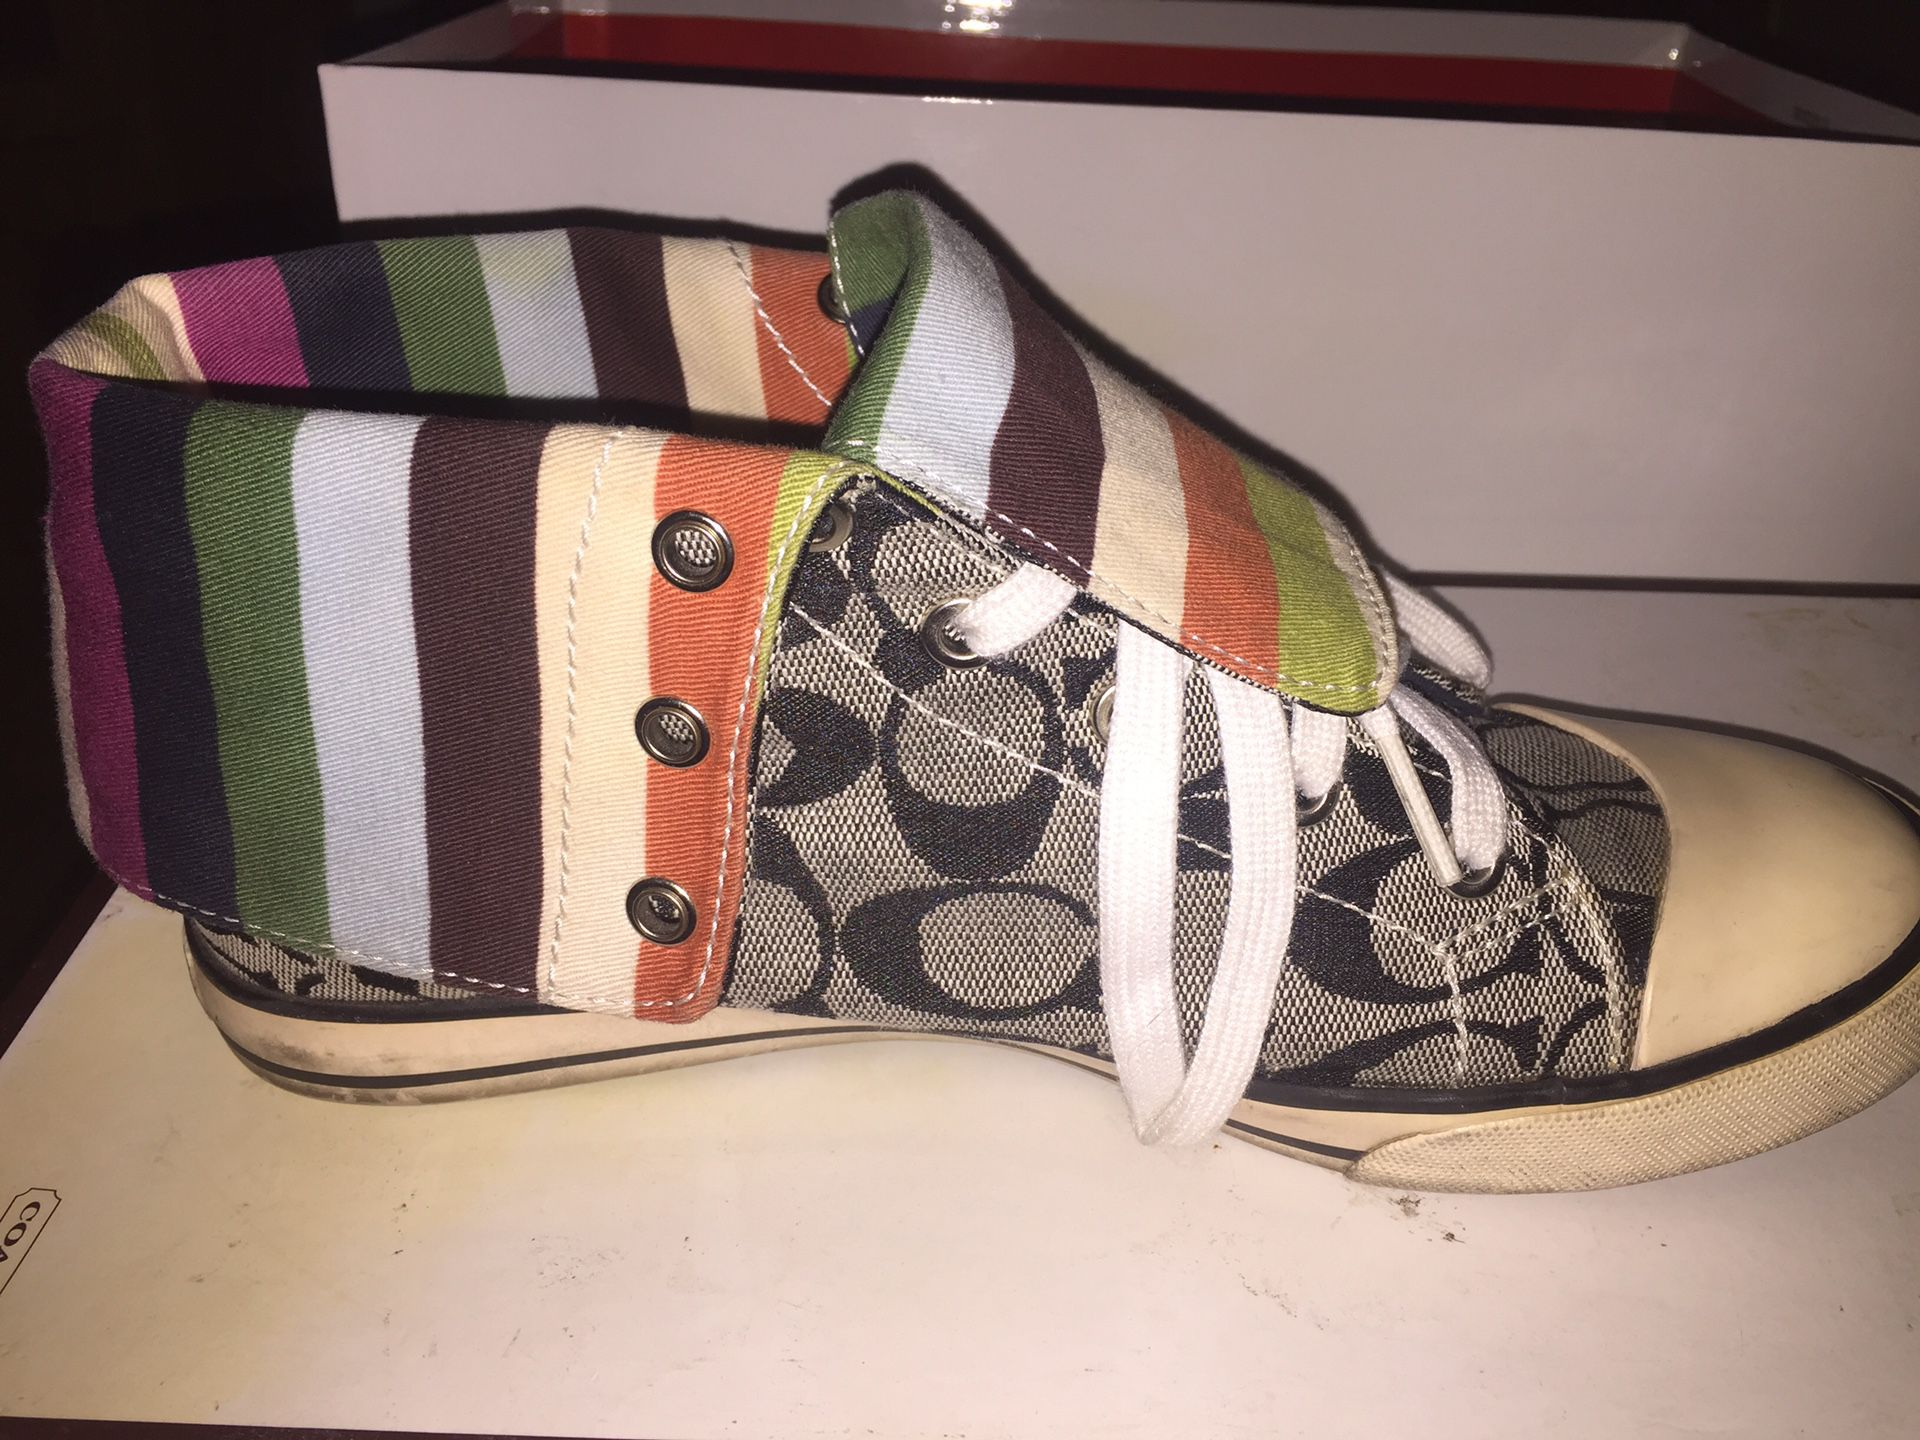 Coach Tennis shoes high tops. Size 8.5 in very good condition. $60.00.